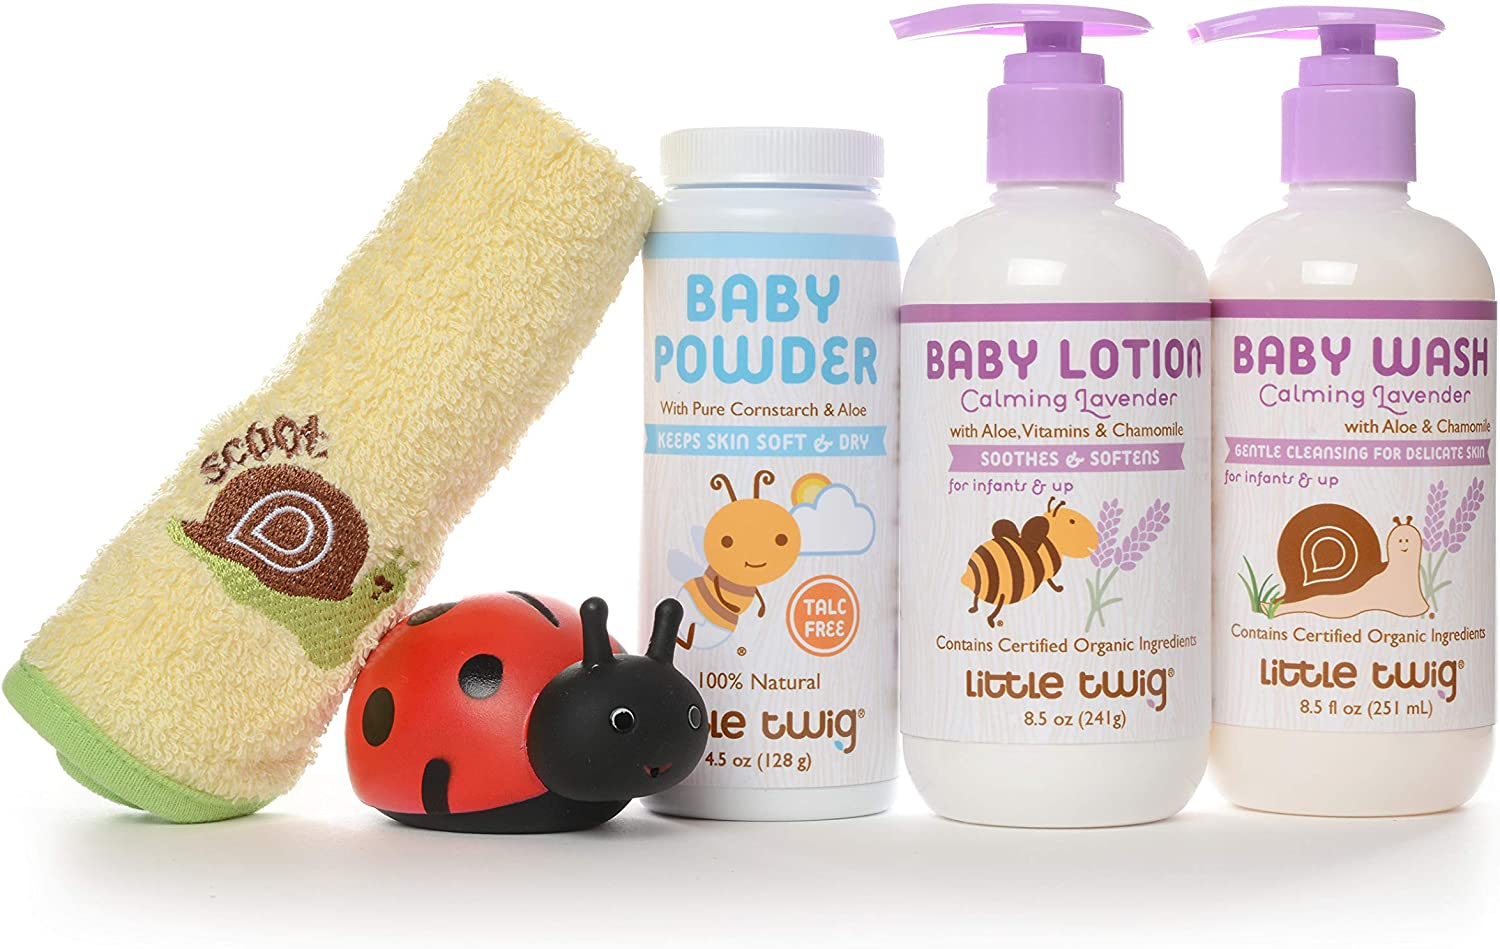 Little Twig Baby Basics Baby Powder Plus Baby Wash and Lotion Washcloth and Tub Toy Gift Set, Lavender/Unscented, 1.9 Pound